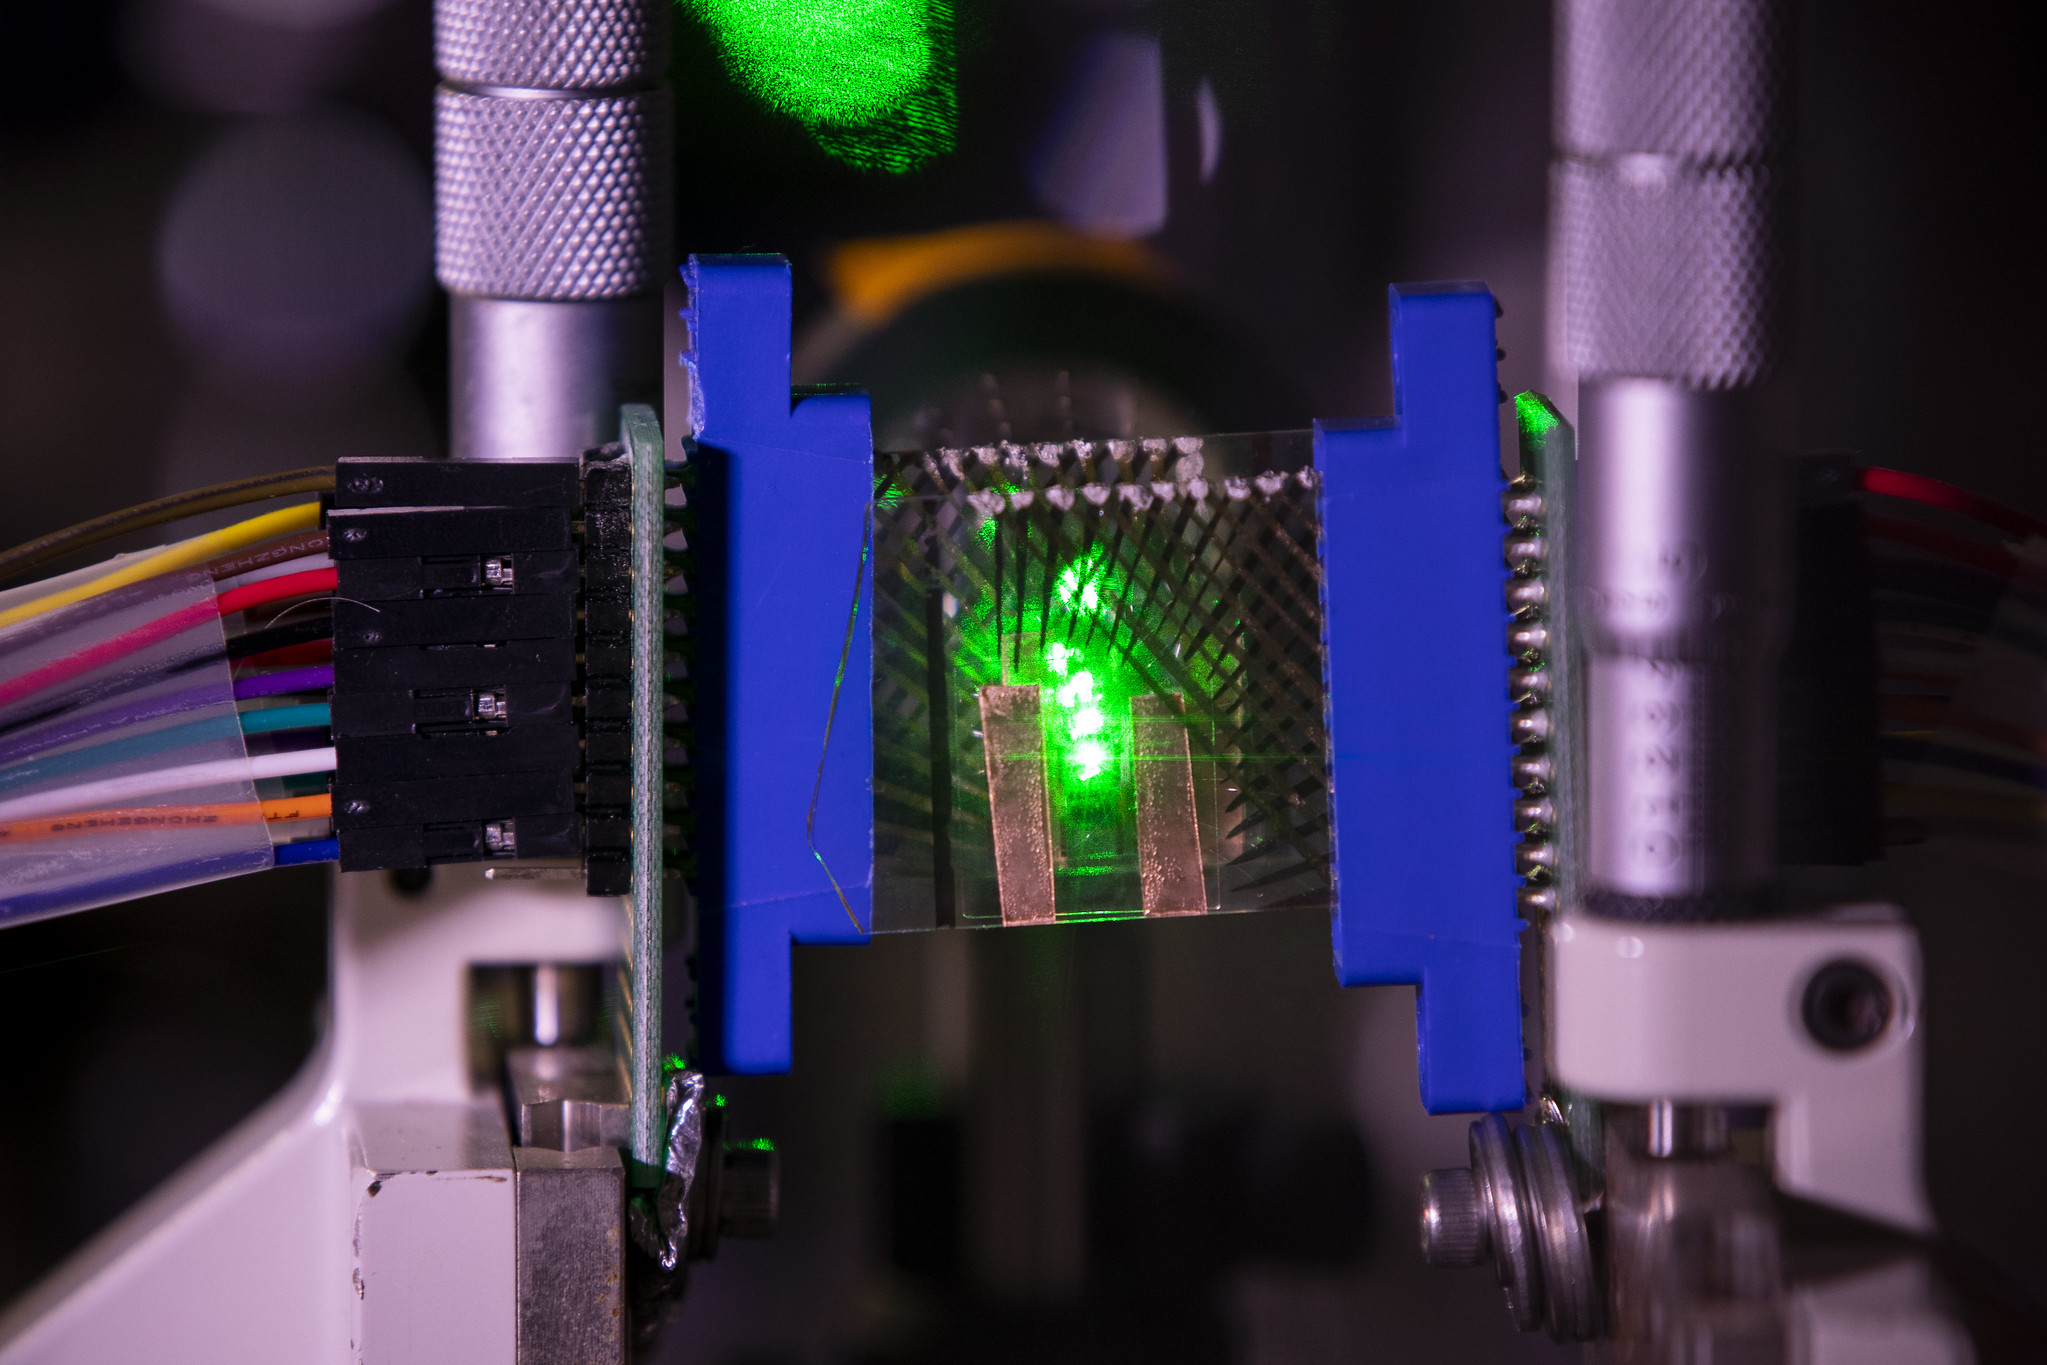 A graphene-based transparent photodetector array (acting as two layers of sensors in a camera) measures the focal stack images of a point object simulated by focusing a green laser beam onto a small spot in front of the lens inside Ted Norris' lab on North Campus in Ann Arbor, MI on January 27, 2021. Norris and his team fabricated a prototype of transparent photodetector arrays with graphene on glass and used two pieces of the detector arrays separated slightly apart and behind an imaging lens to demonstrate its potential applications in 3D object tracking tasks. With this prototype's application this will aid in autonomous driving and robotics, responding to moving objects that require their perception units to obtain not only what they are but also where and how far they are in real time. Image credit: Robert Coelius/Michigan Engineering, Communications and Marketing